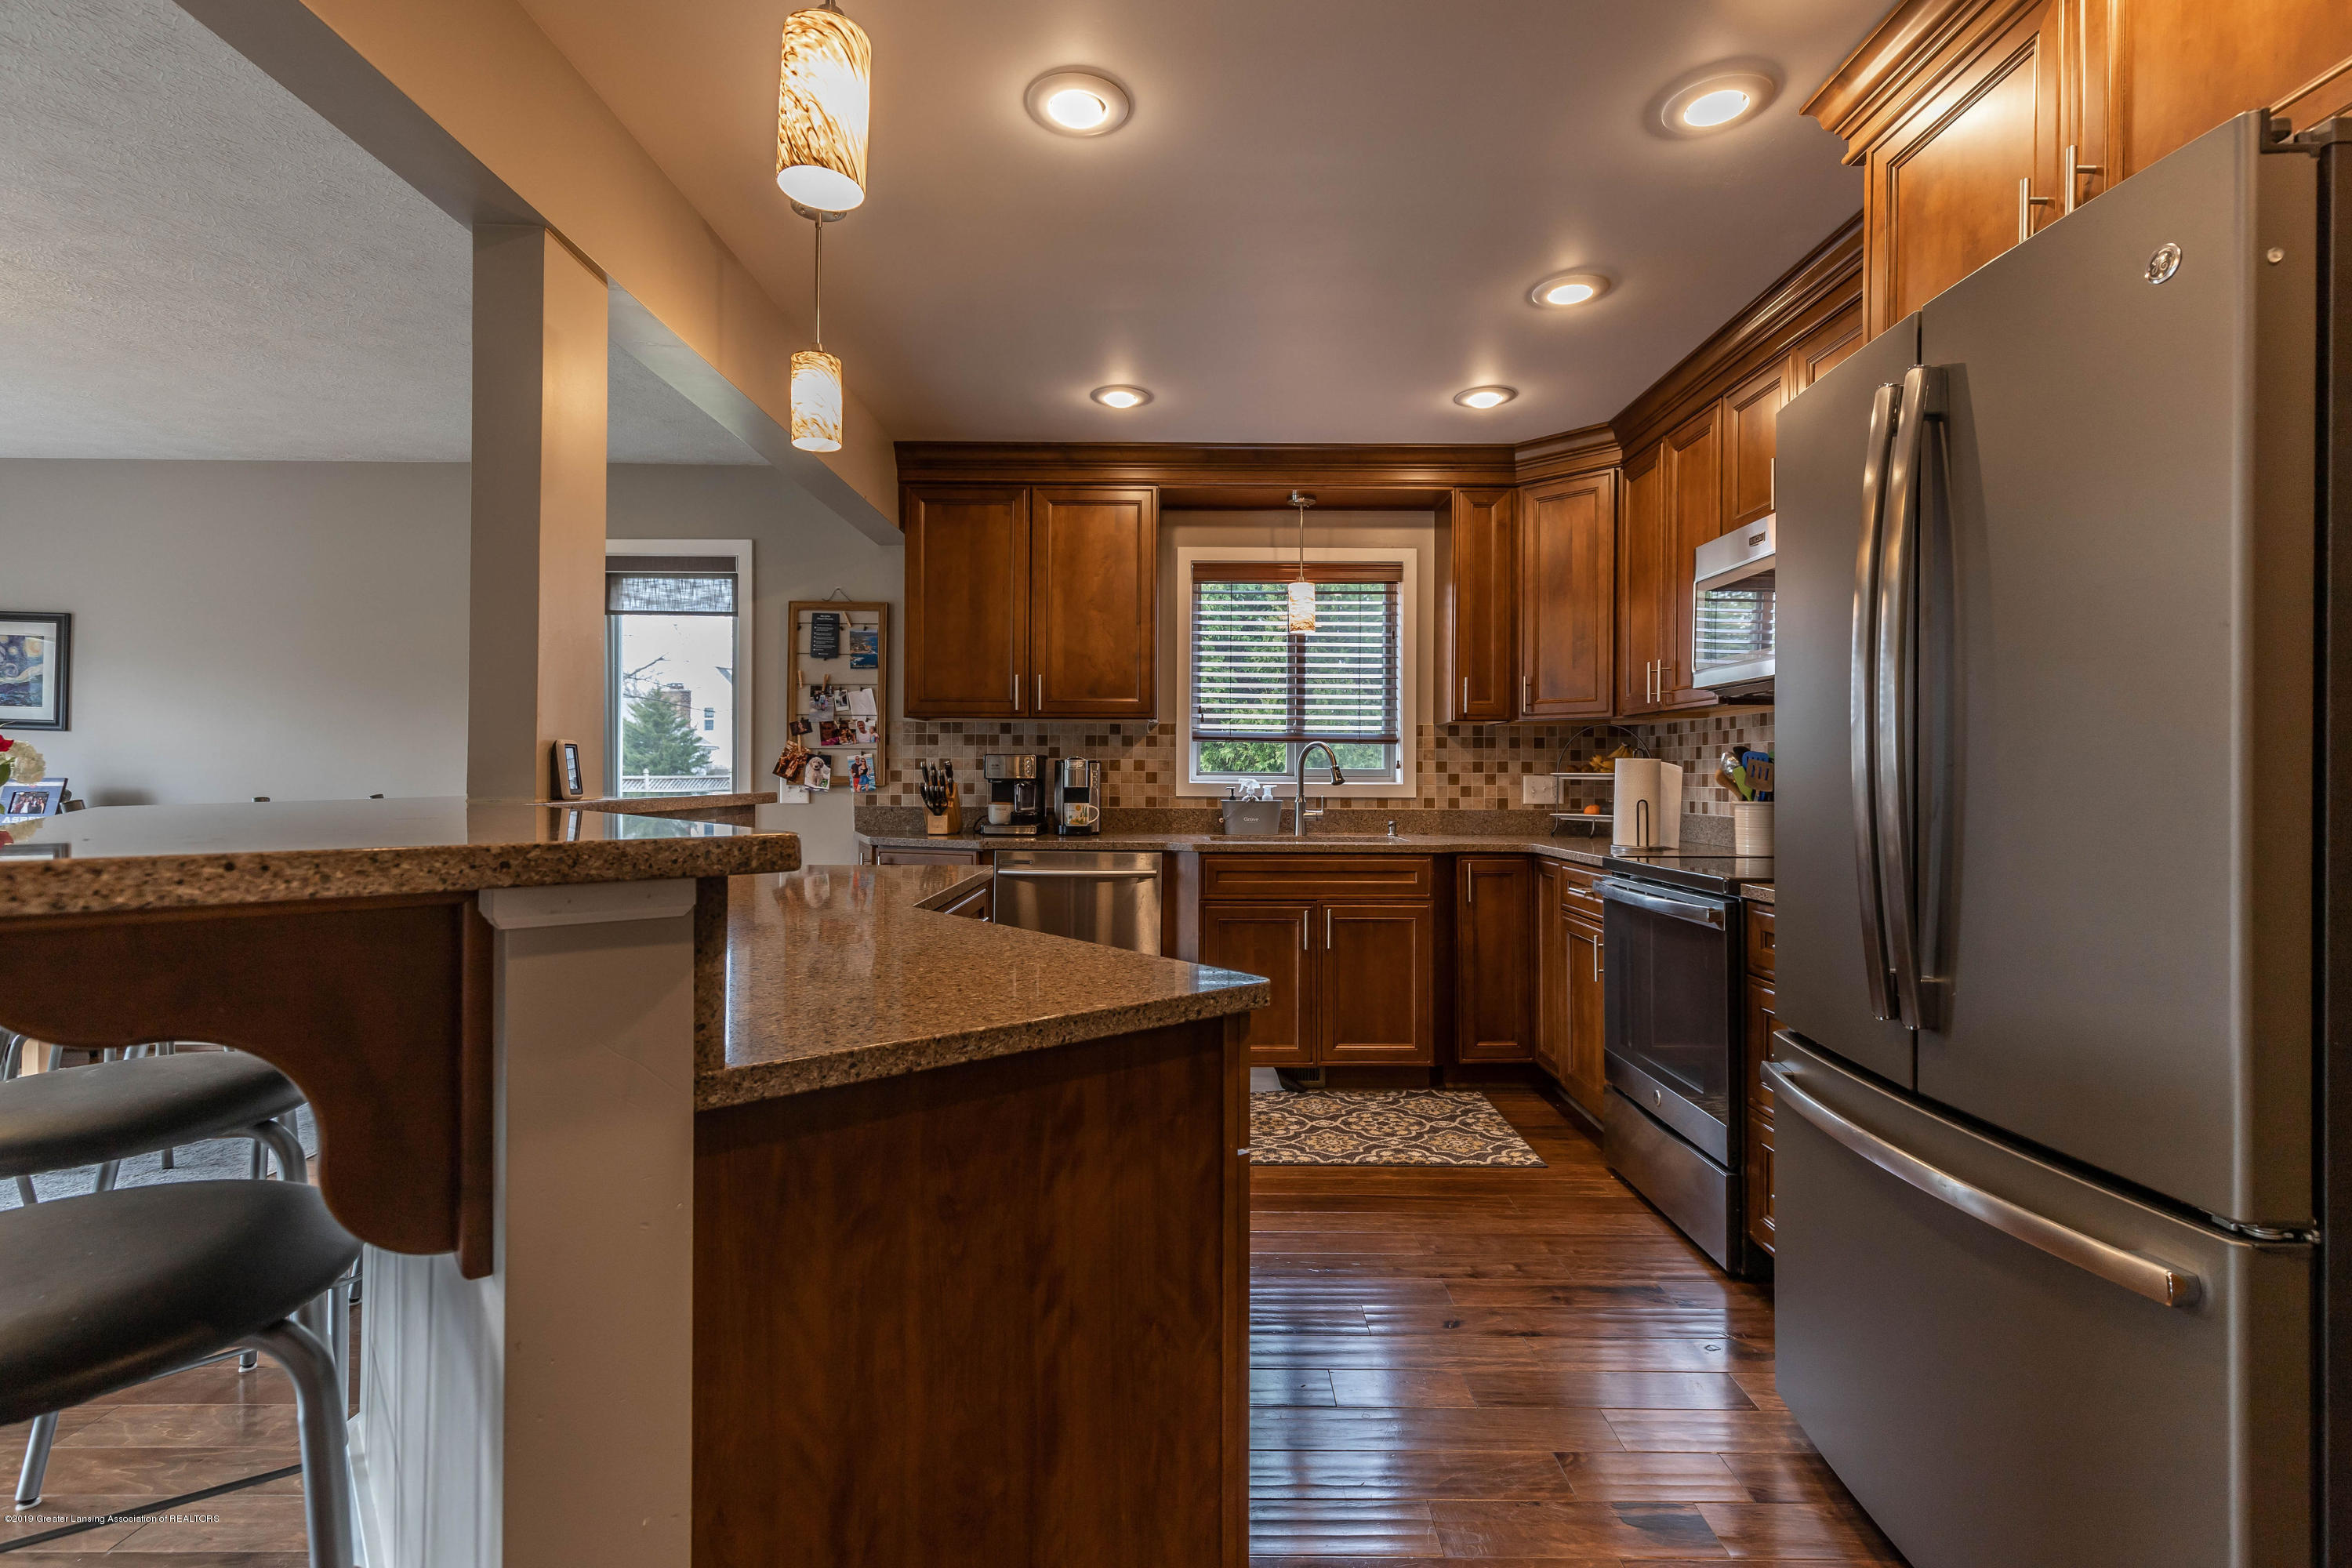 1701 Wyngarden Ln - Kitchen - 29